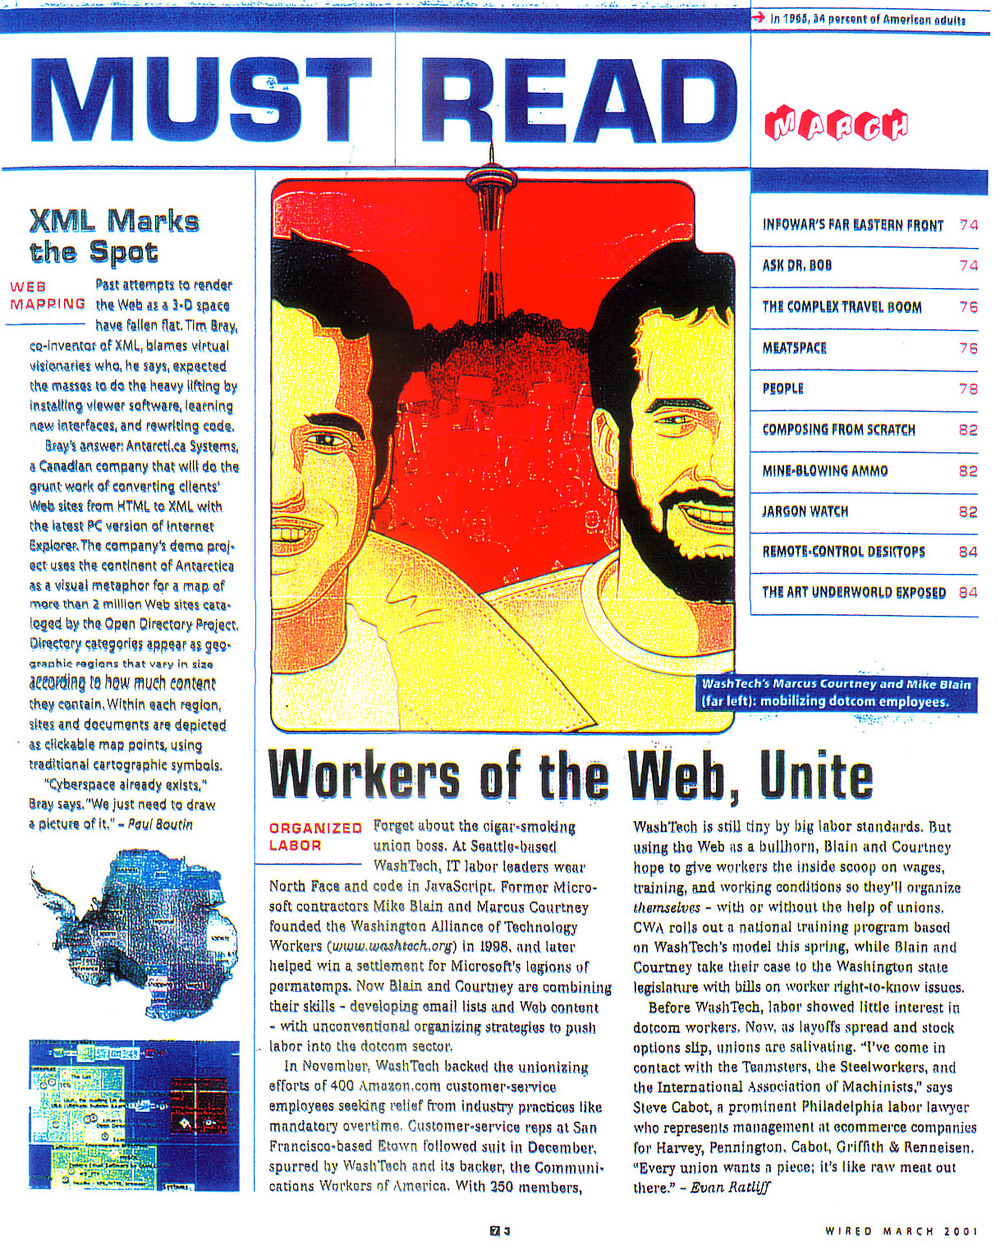 wired magazine-march 2001-workers on the web, unite.jpg